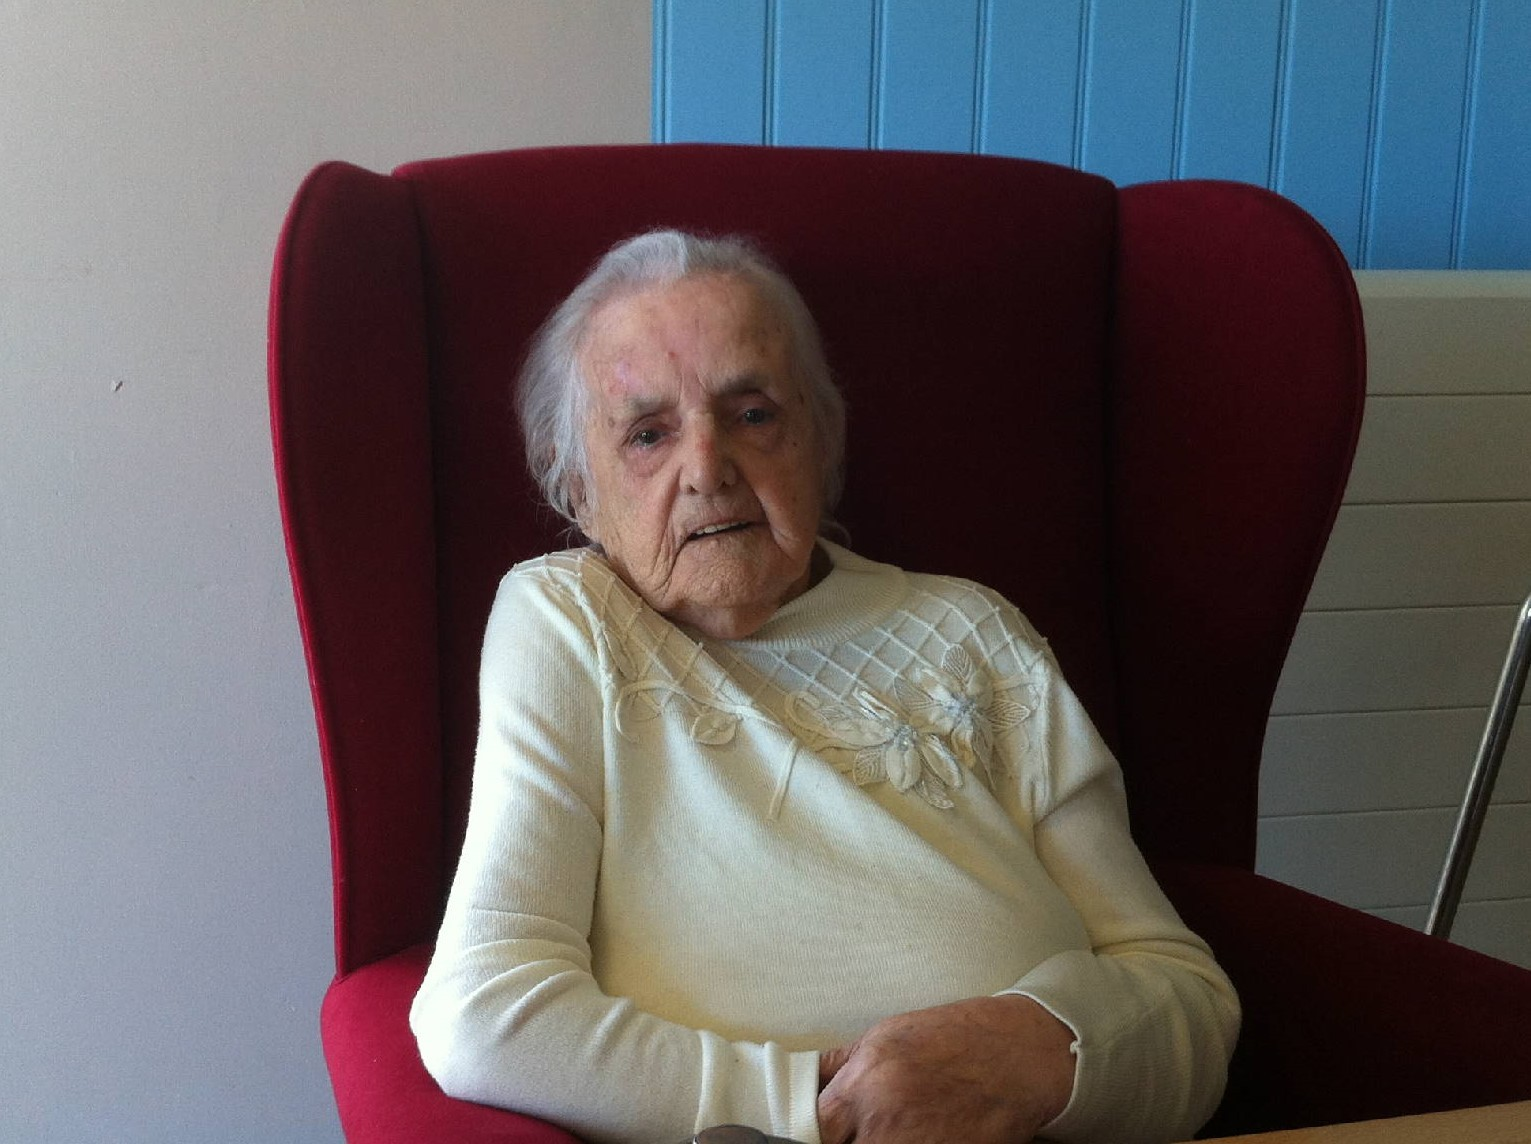 100-year-old Dorothy Roberts at the Care Home in Llanfair PG